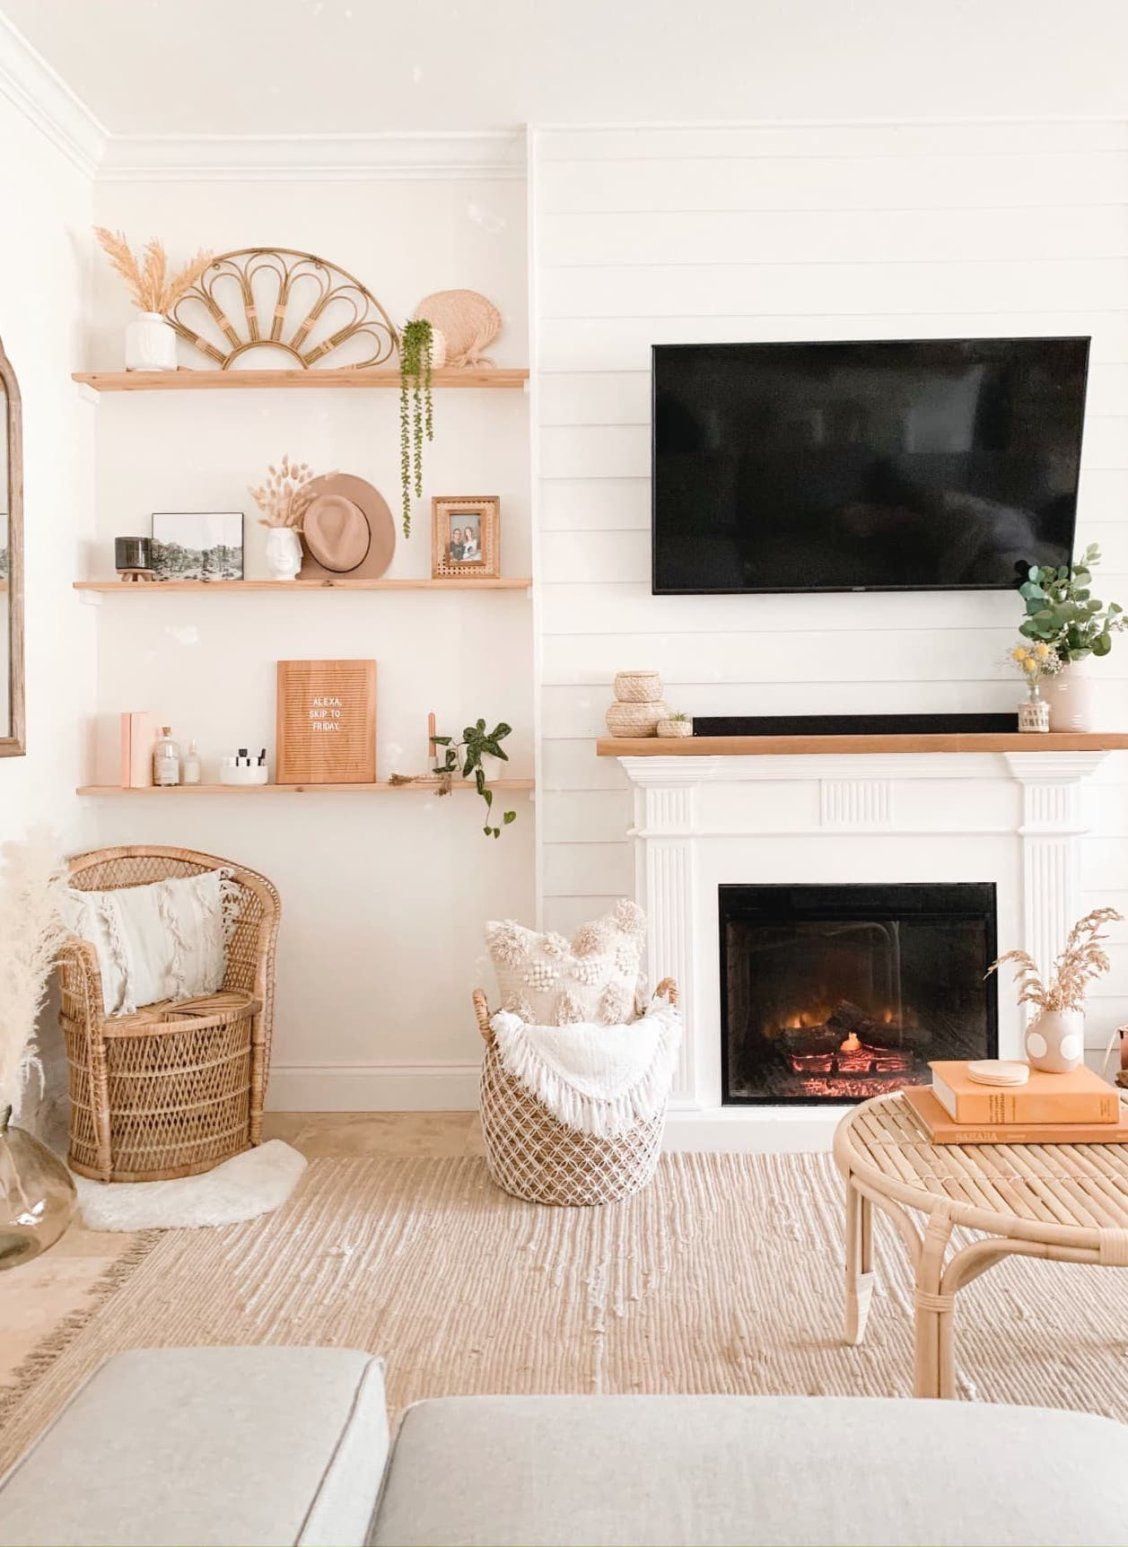 10+ Top Pictures Of Living Room Fireplaces